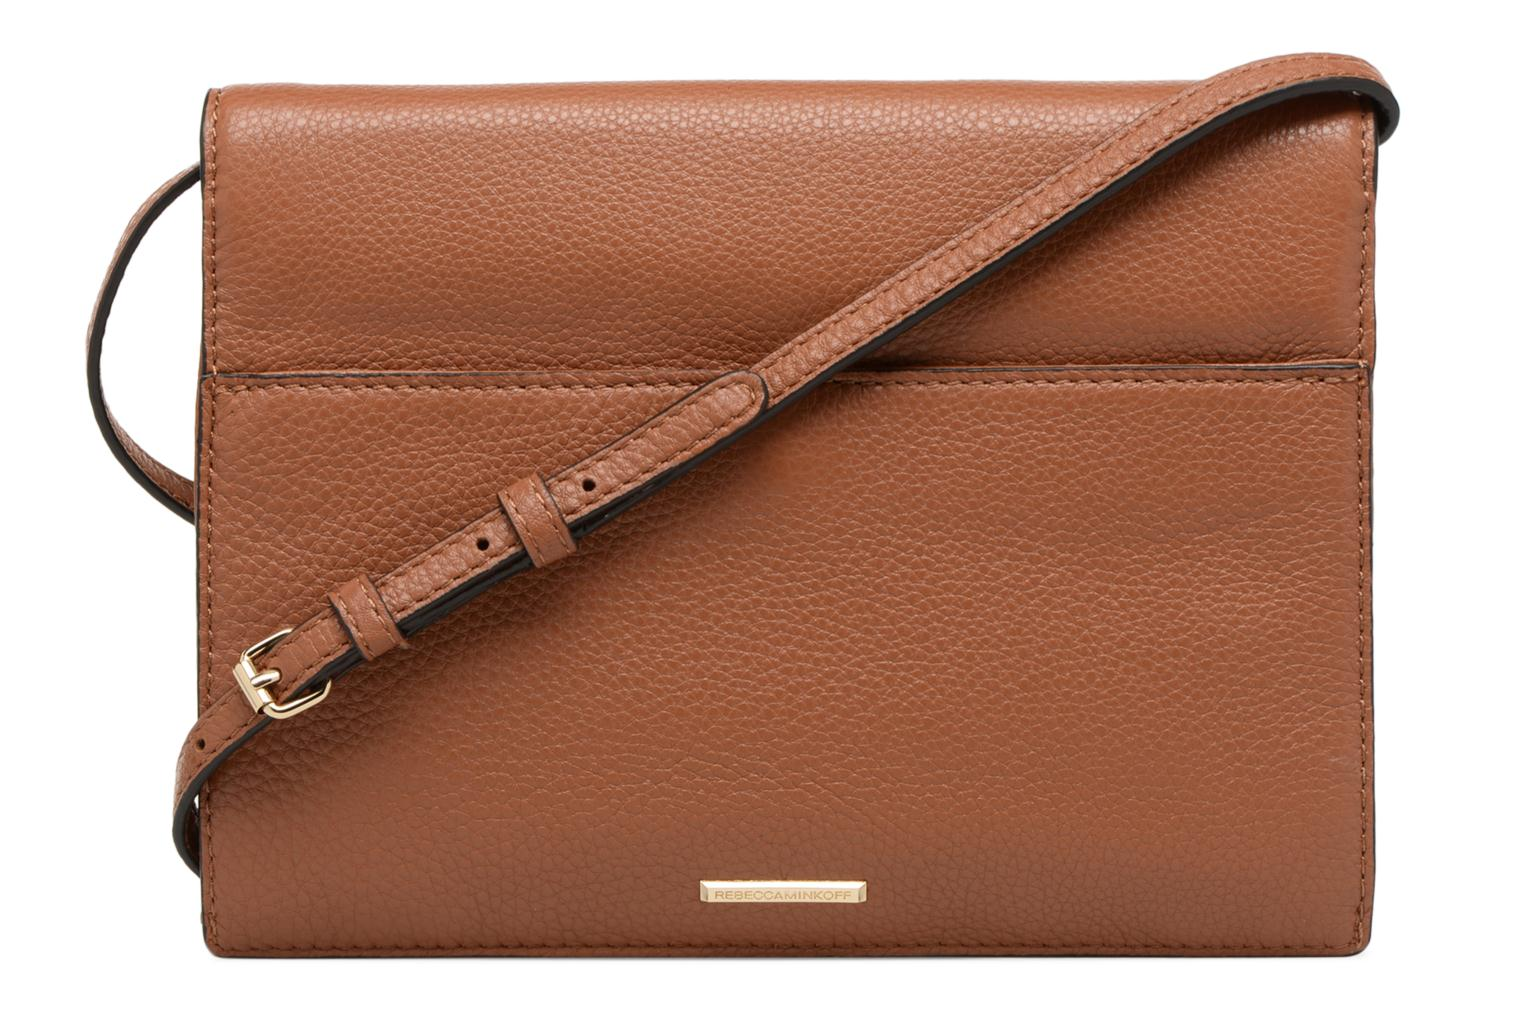 Sacs à main Rebecca Minkoff SMALL REGAN CLUTCH Marron vue face